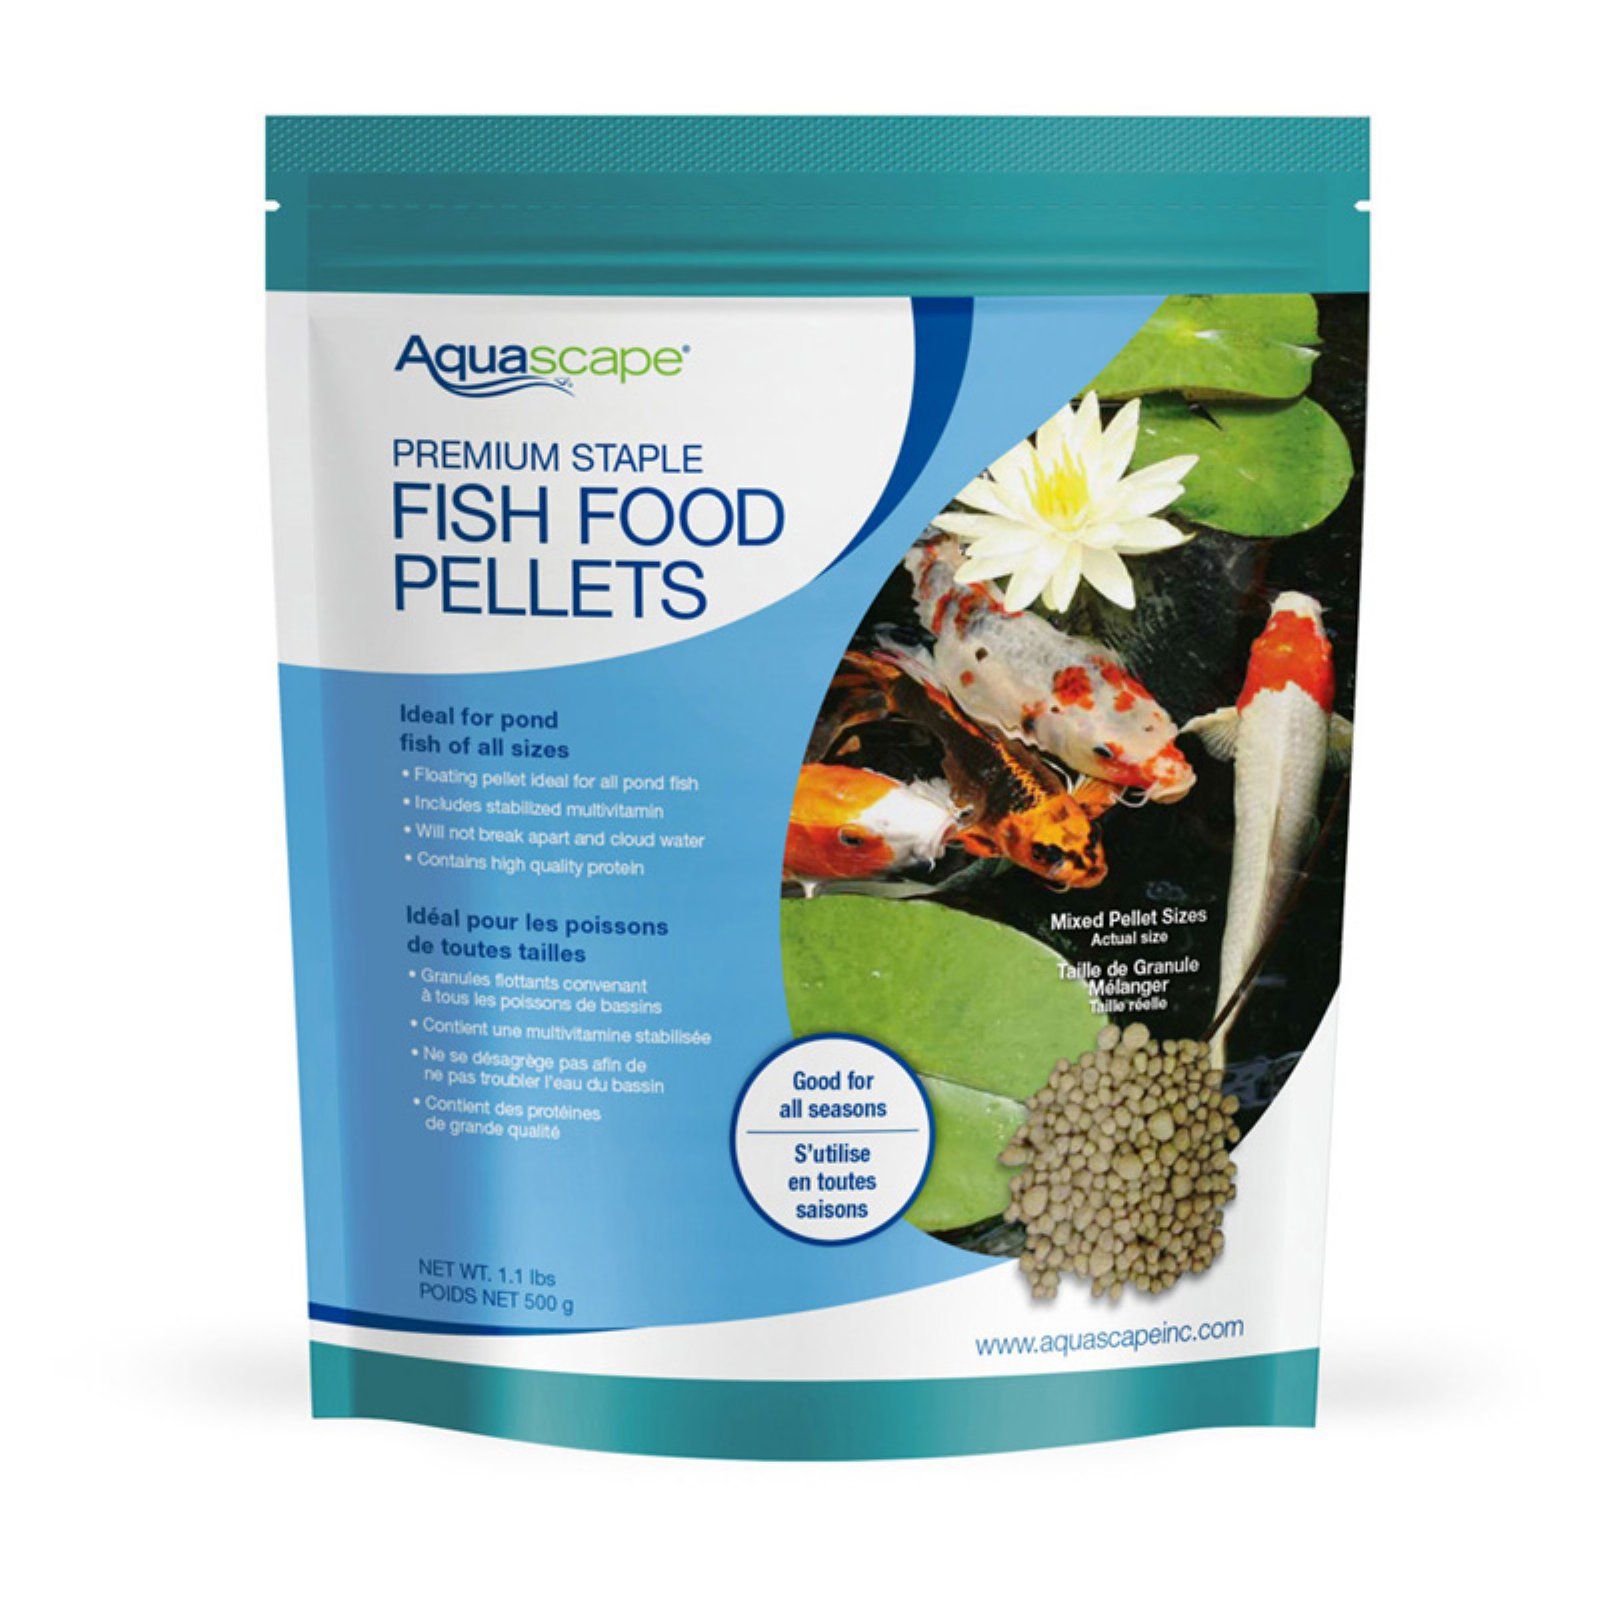 Aquascape Premium Staple Fish Food Mixed Pellets by Aquascape